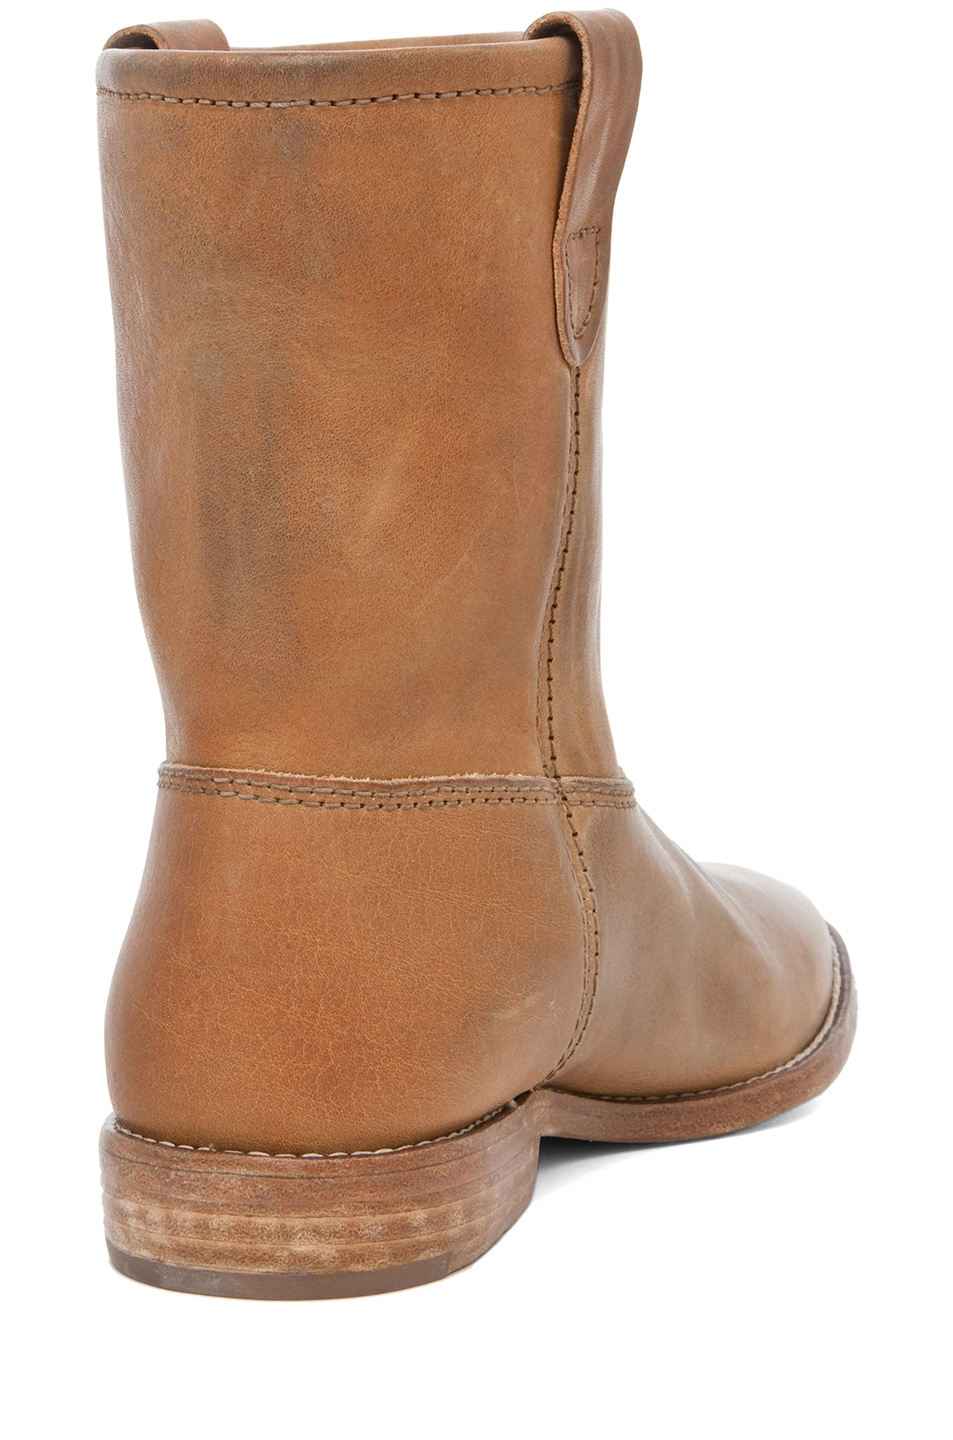 Image 3 of Isabel Marant Jenny Calfskin Leather Boots in Naturel